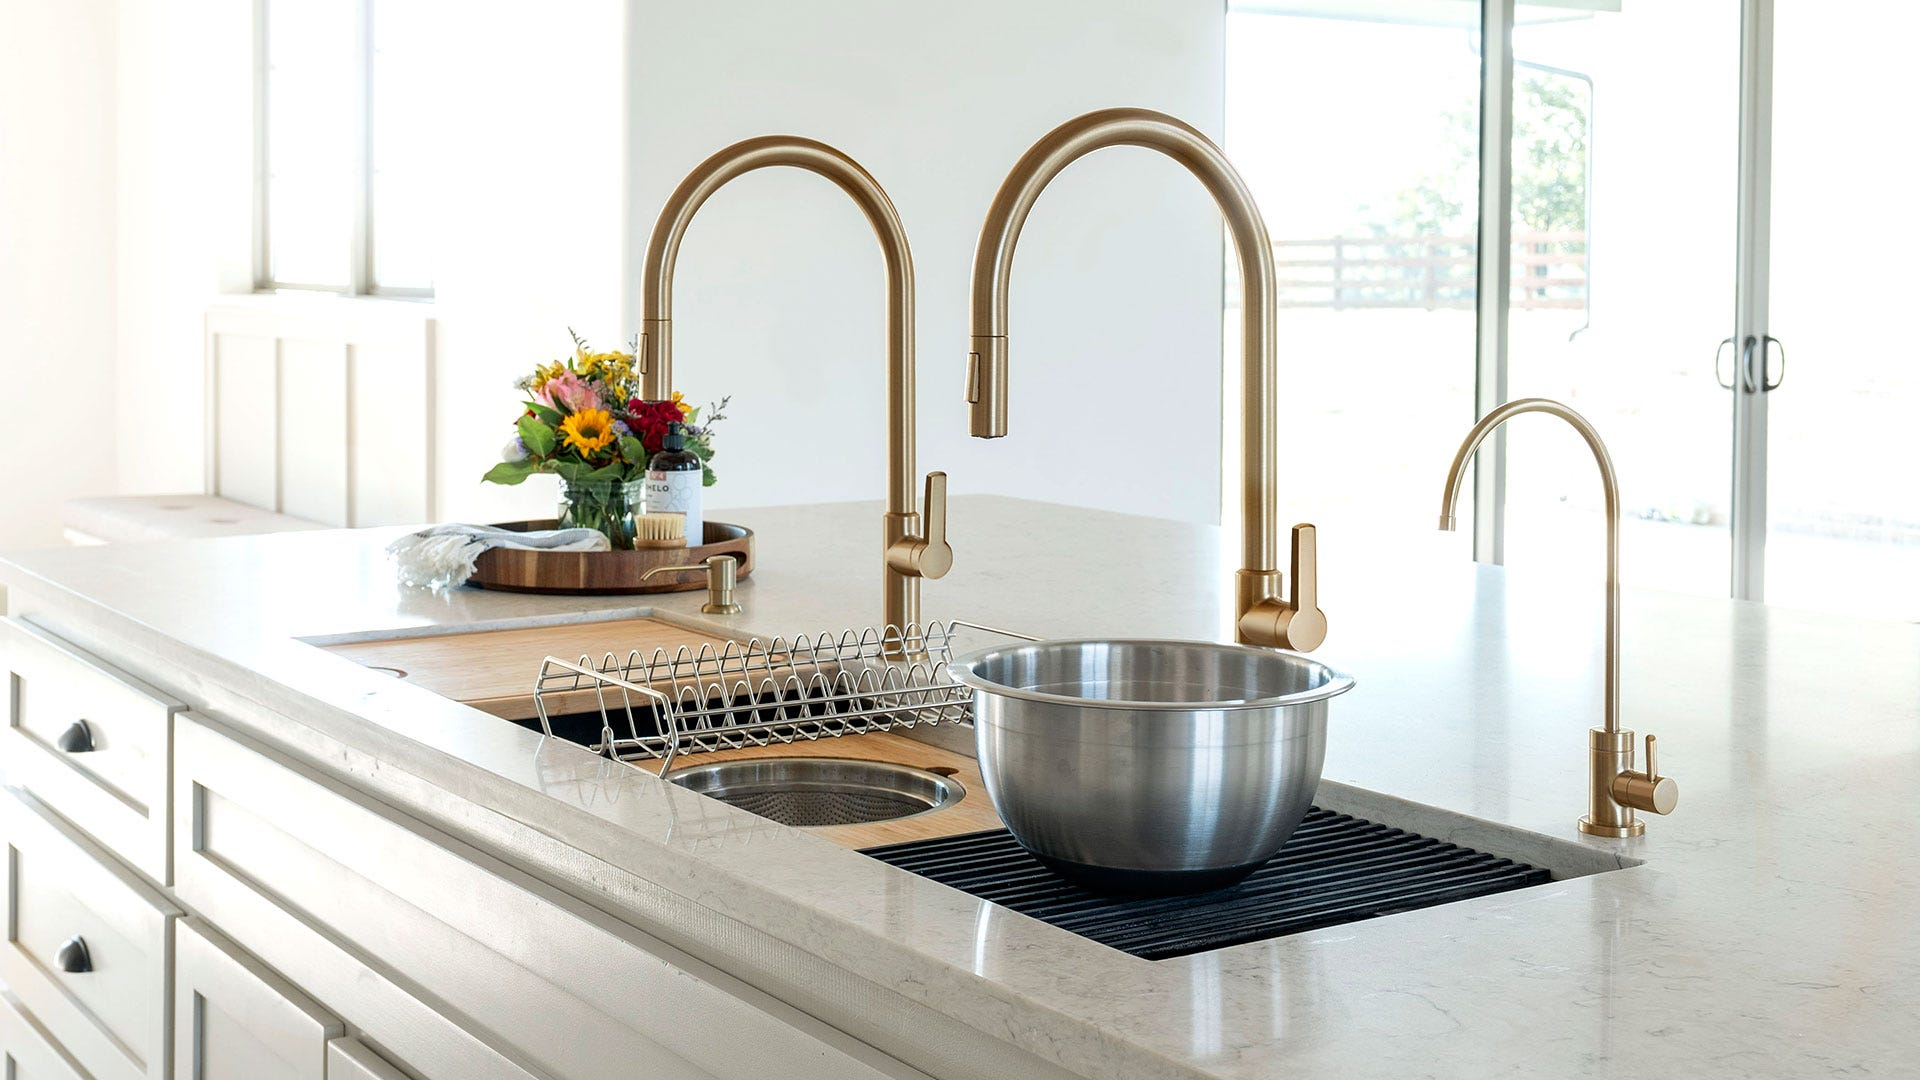 57-inch-sink-Kore-gold-Oletto-faucets